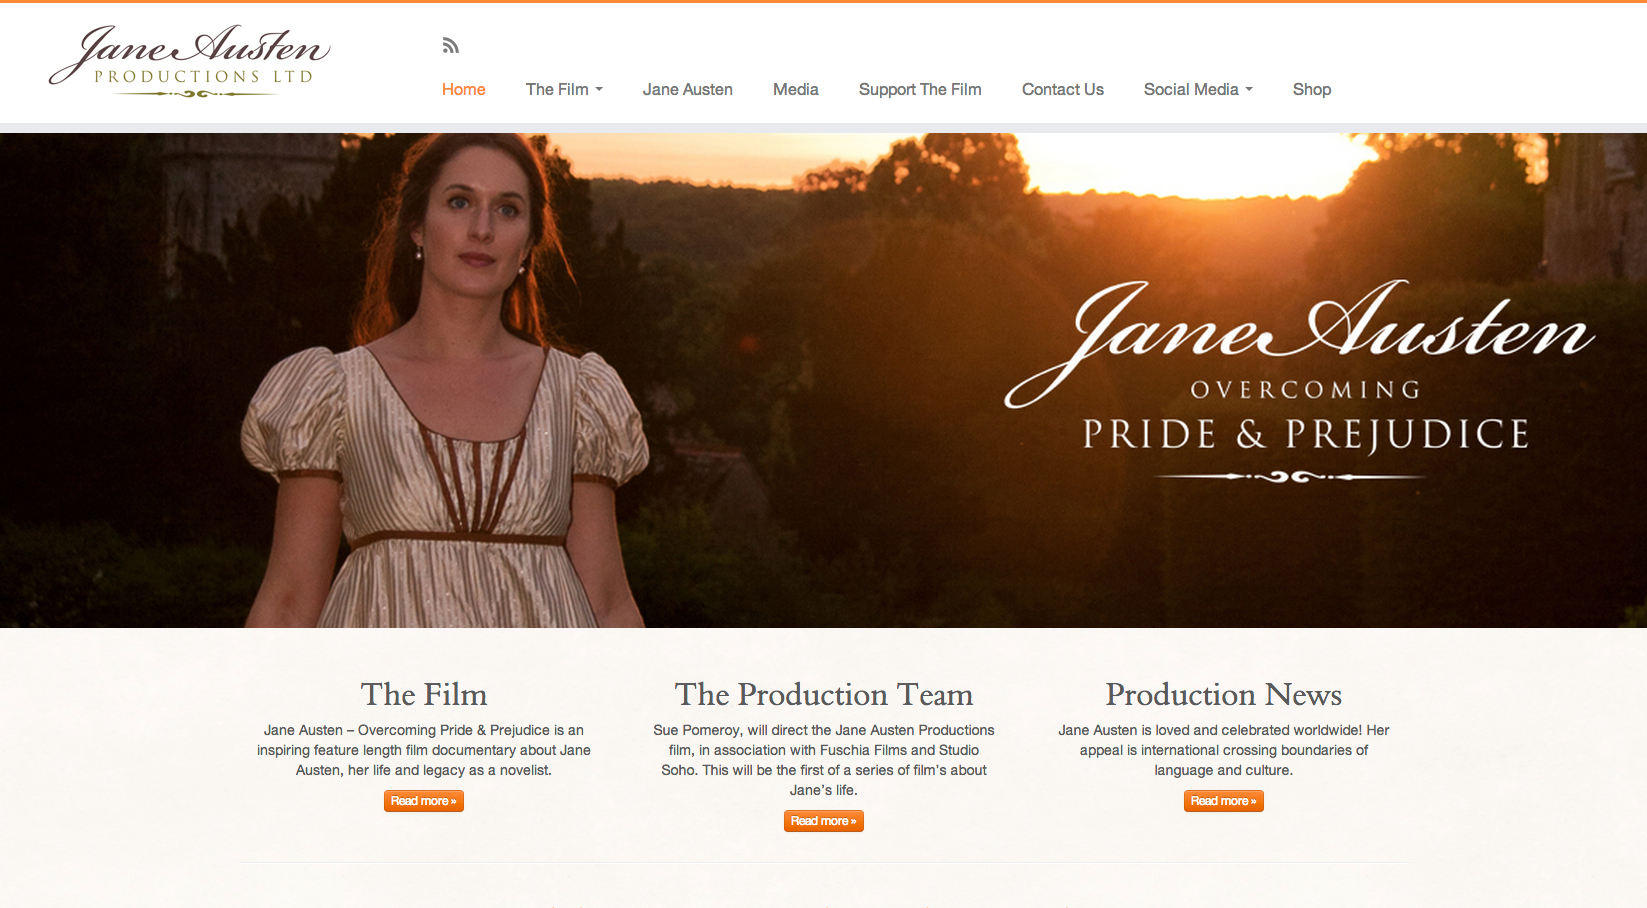 Jane-Austen-Productions-Website-Design copy